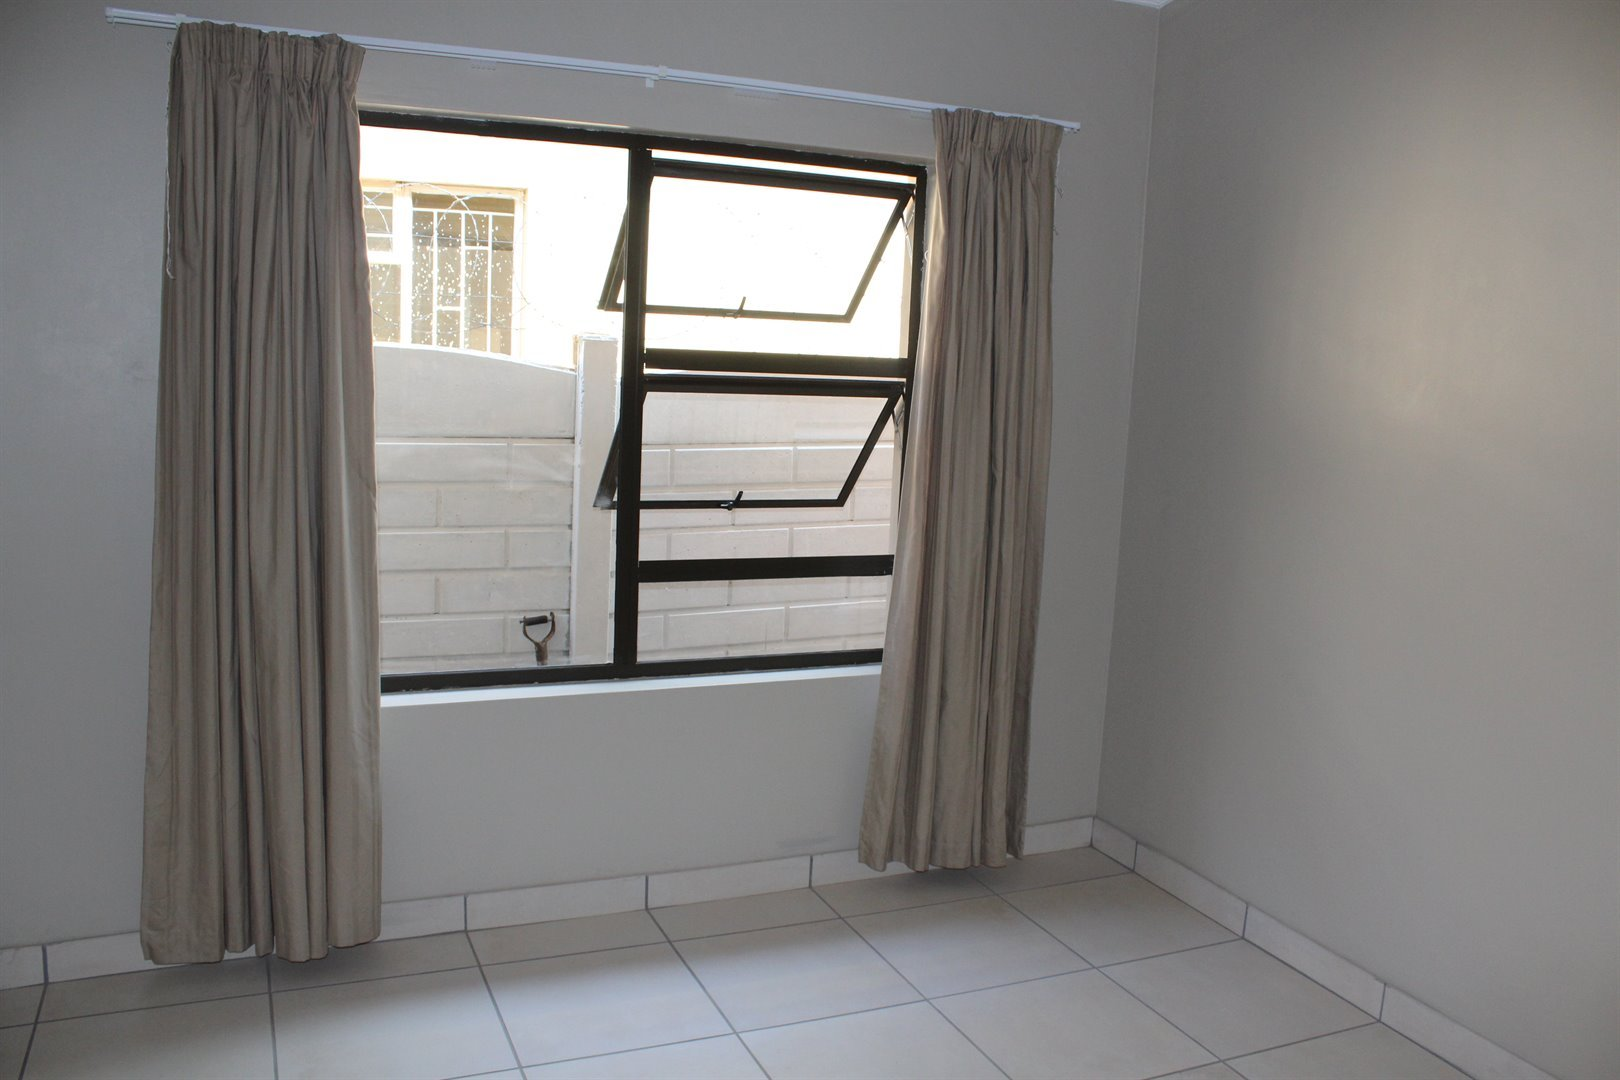 Potchefstroom Central property for sale. Ref No: 13458397. Picture no 6